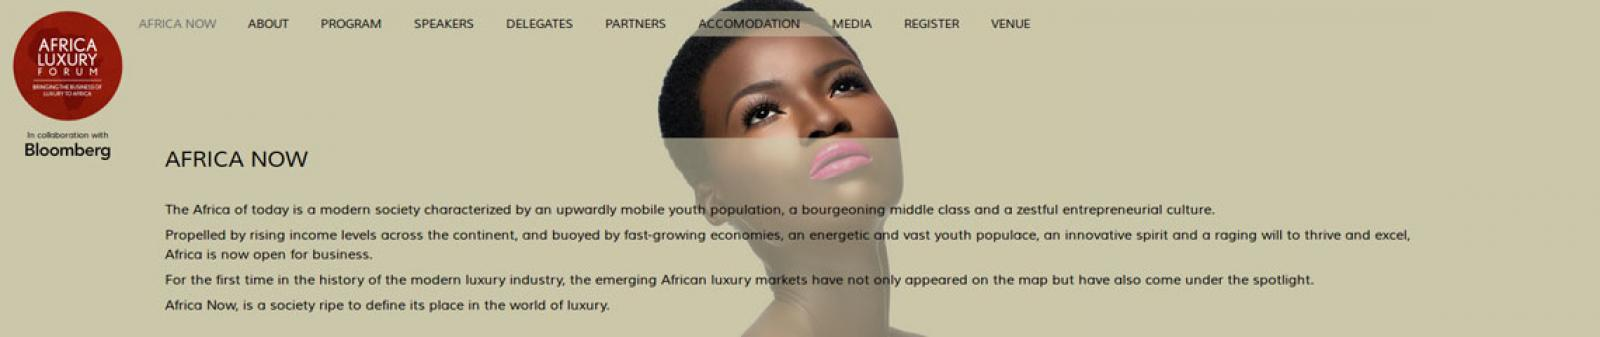 Africa Luxury Forum